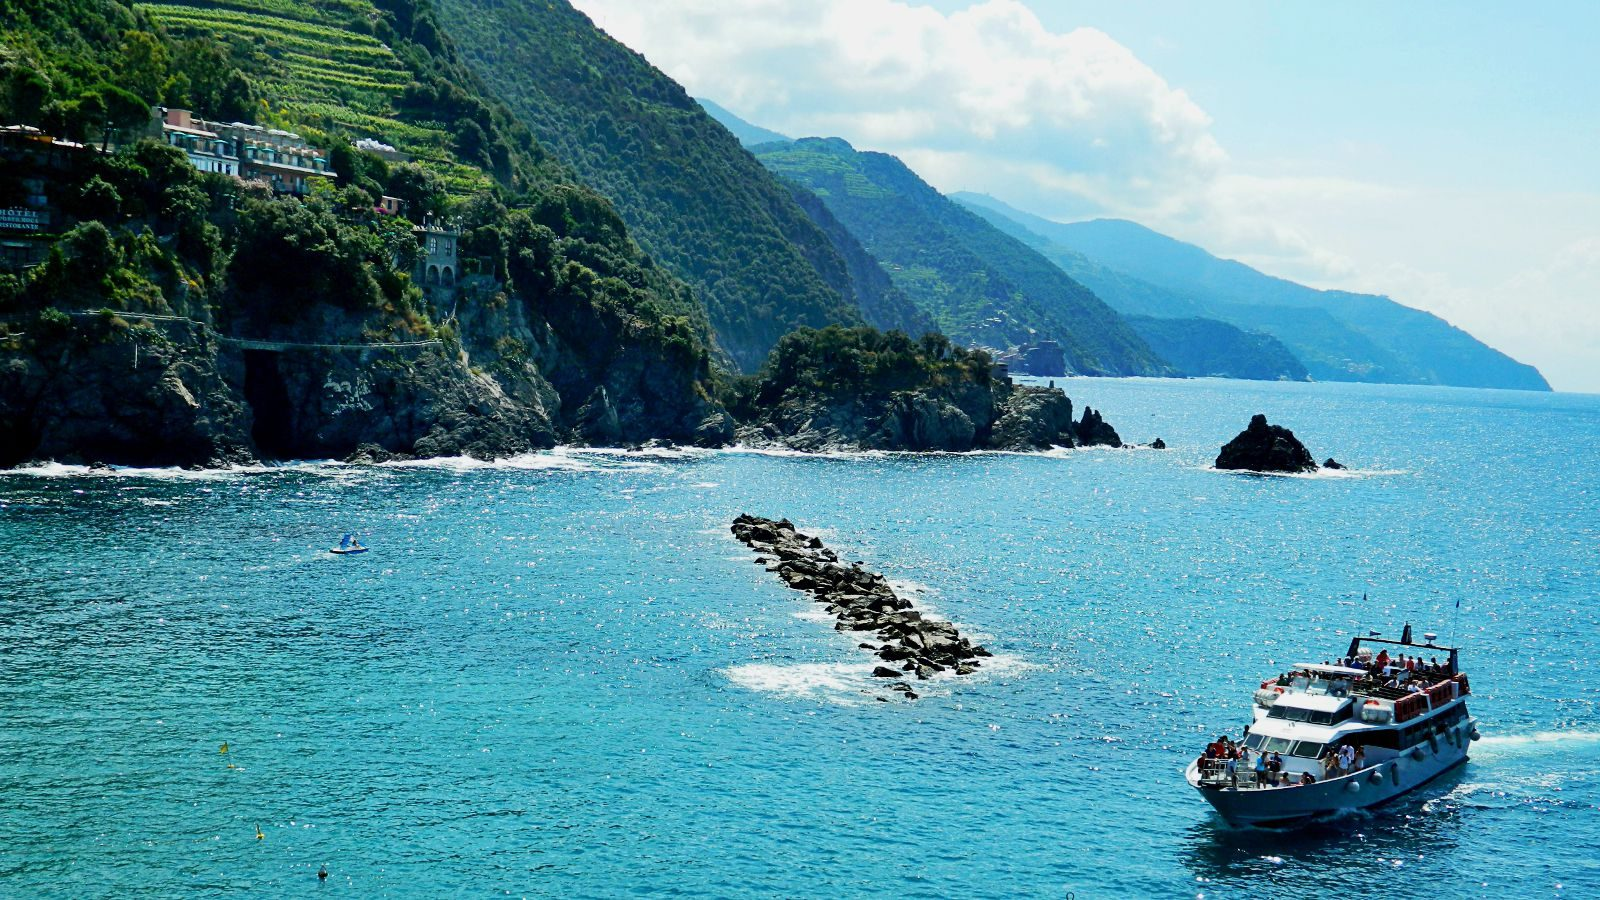 Photo essay: Monterosso al Mare